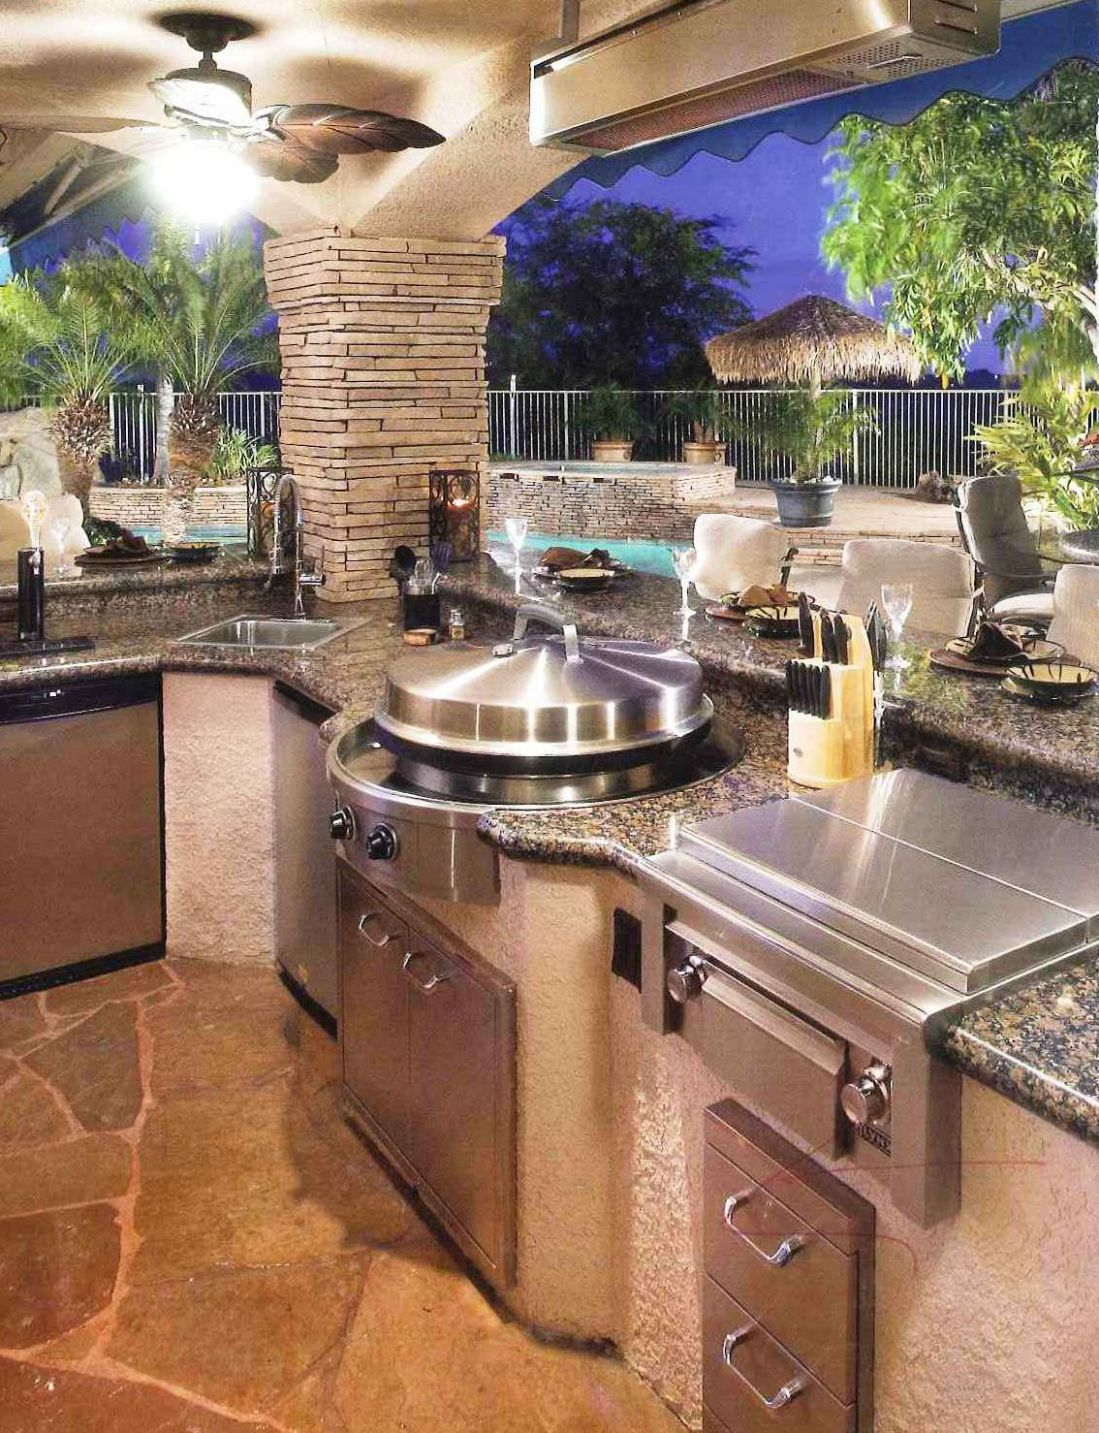 9 Awesomely clever ideas for outdoor kitchen designs | Outdoor ..